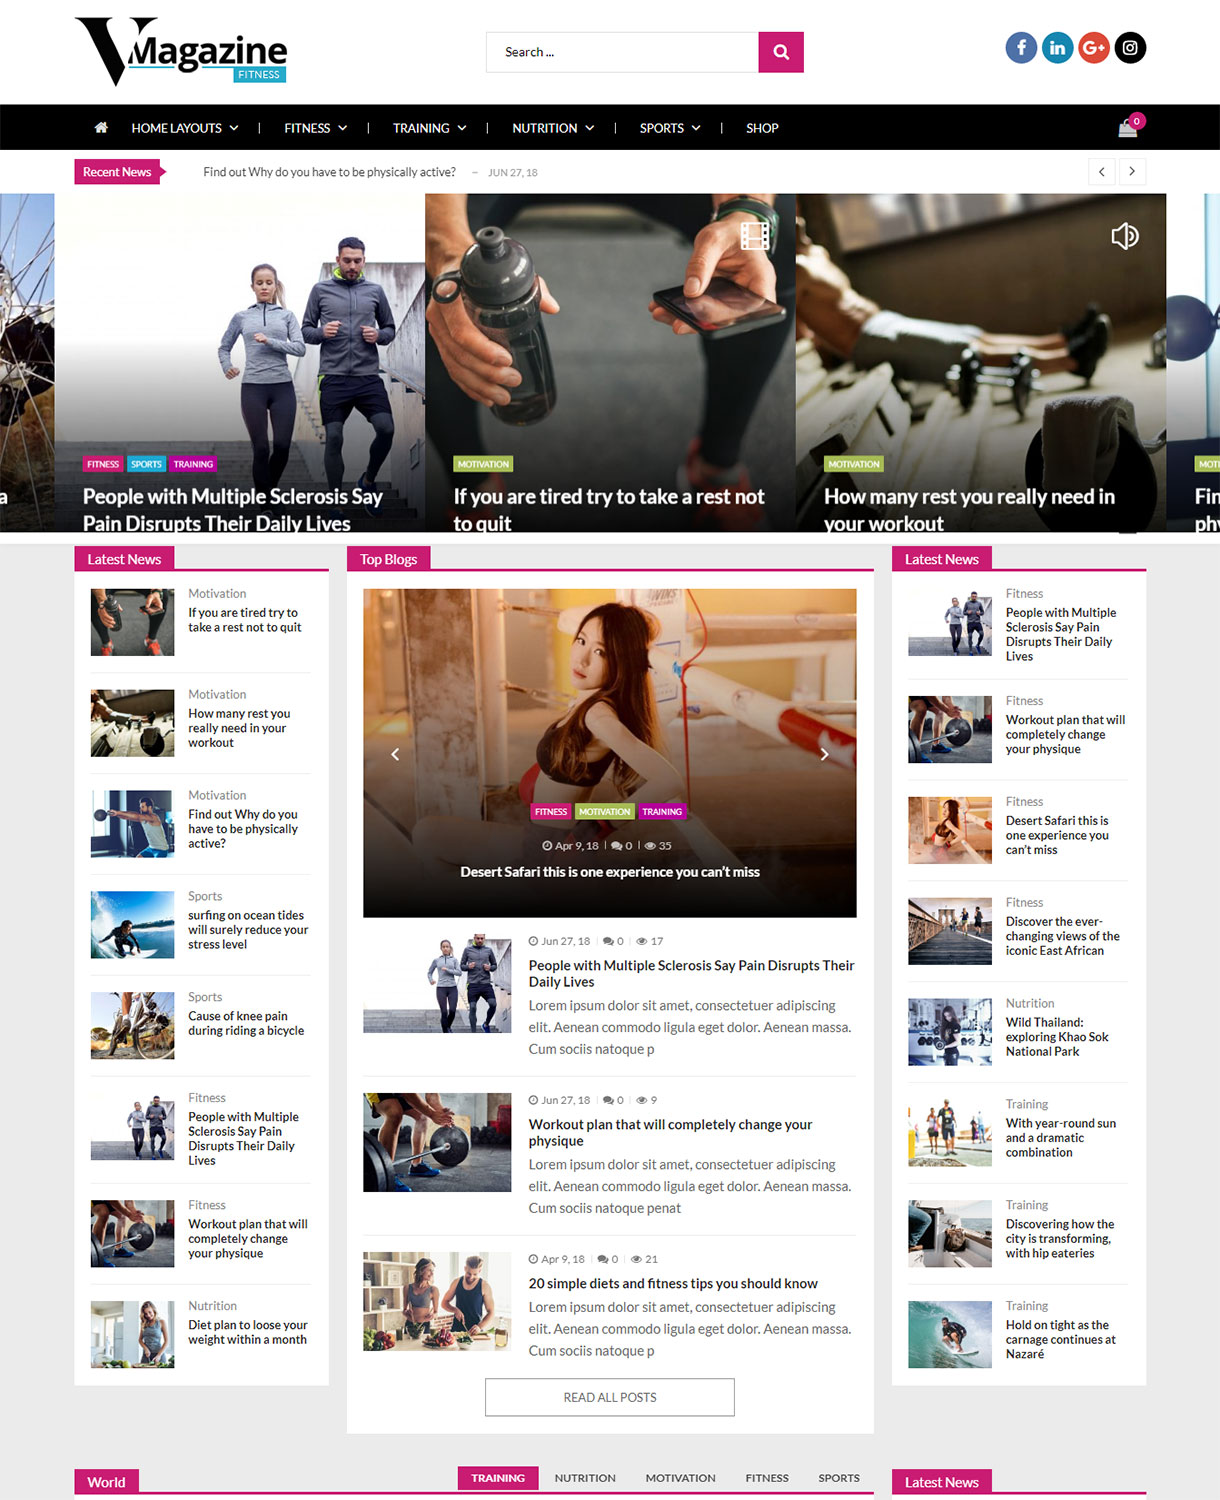 vmagazine fitness demo - VMagazine Review - A hassle free, simple, clean and beautiful WordPress theme to start your news and magazine website